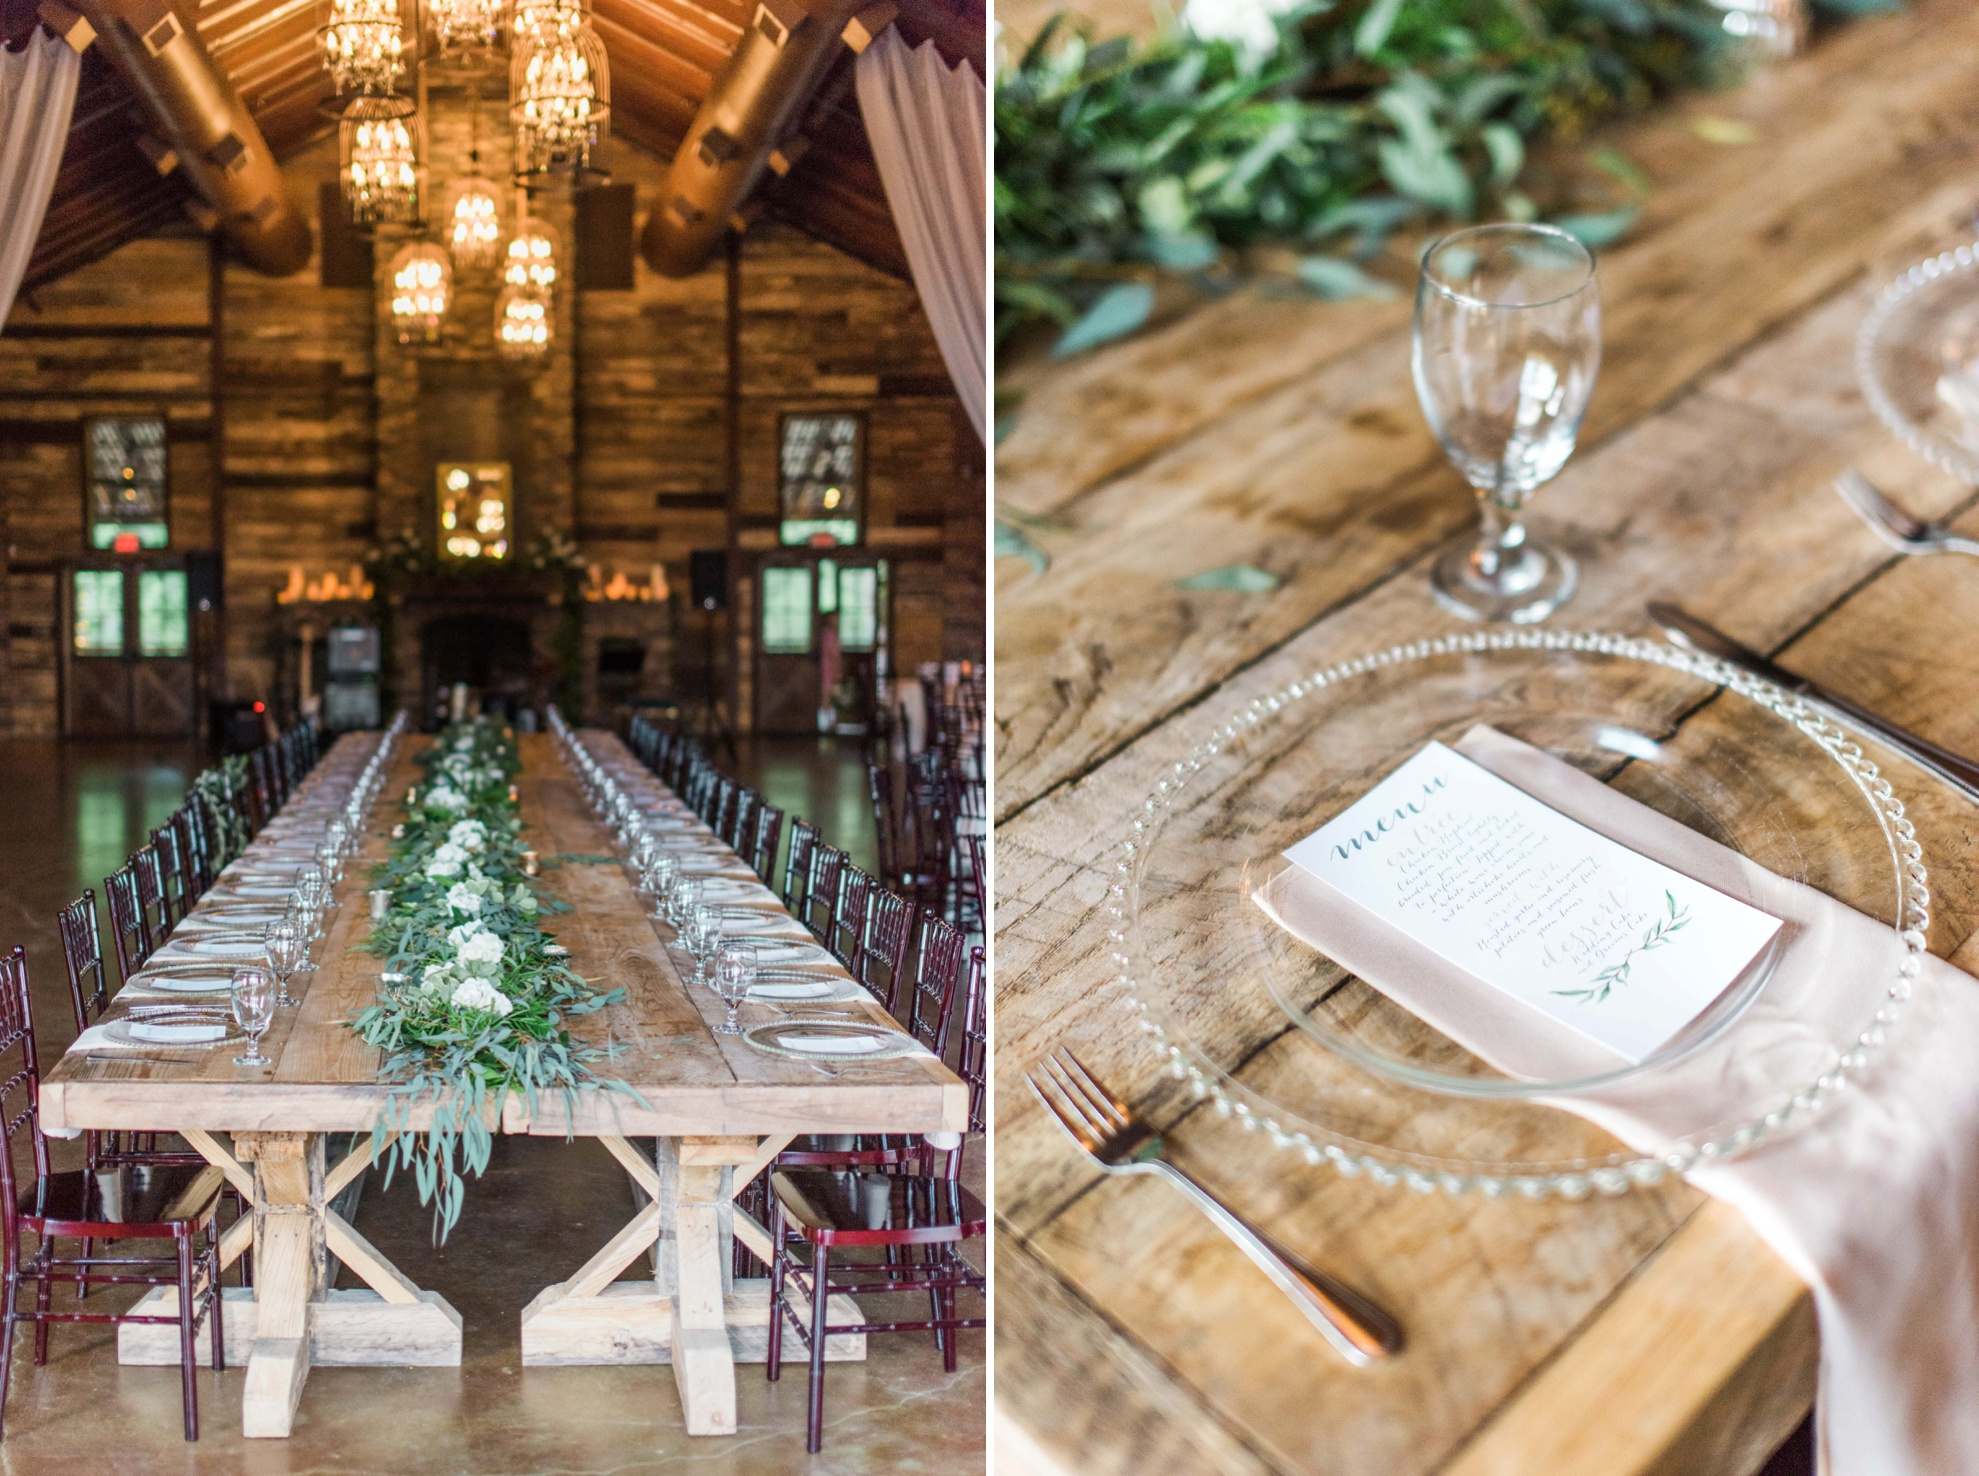 Big-Sky-Barn-Wedding-Ceremony-Reception-Photographer-Houston-Dana-Fernandez-Photography-5.jpg